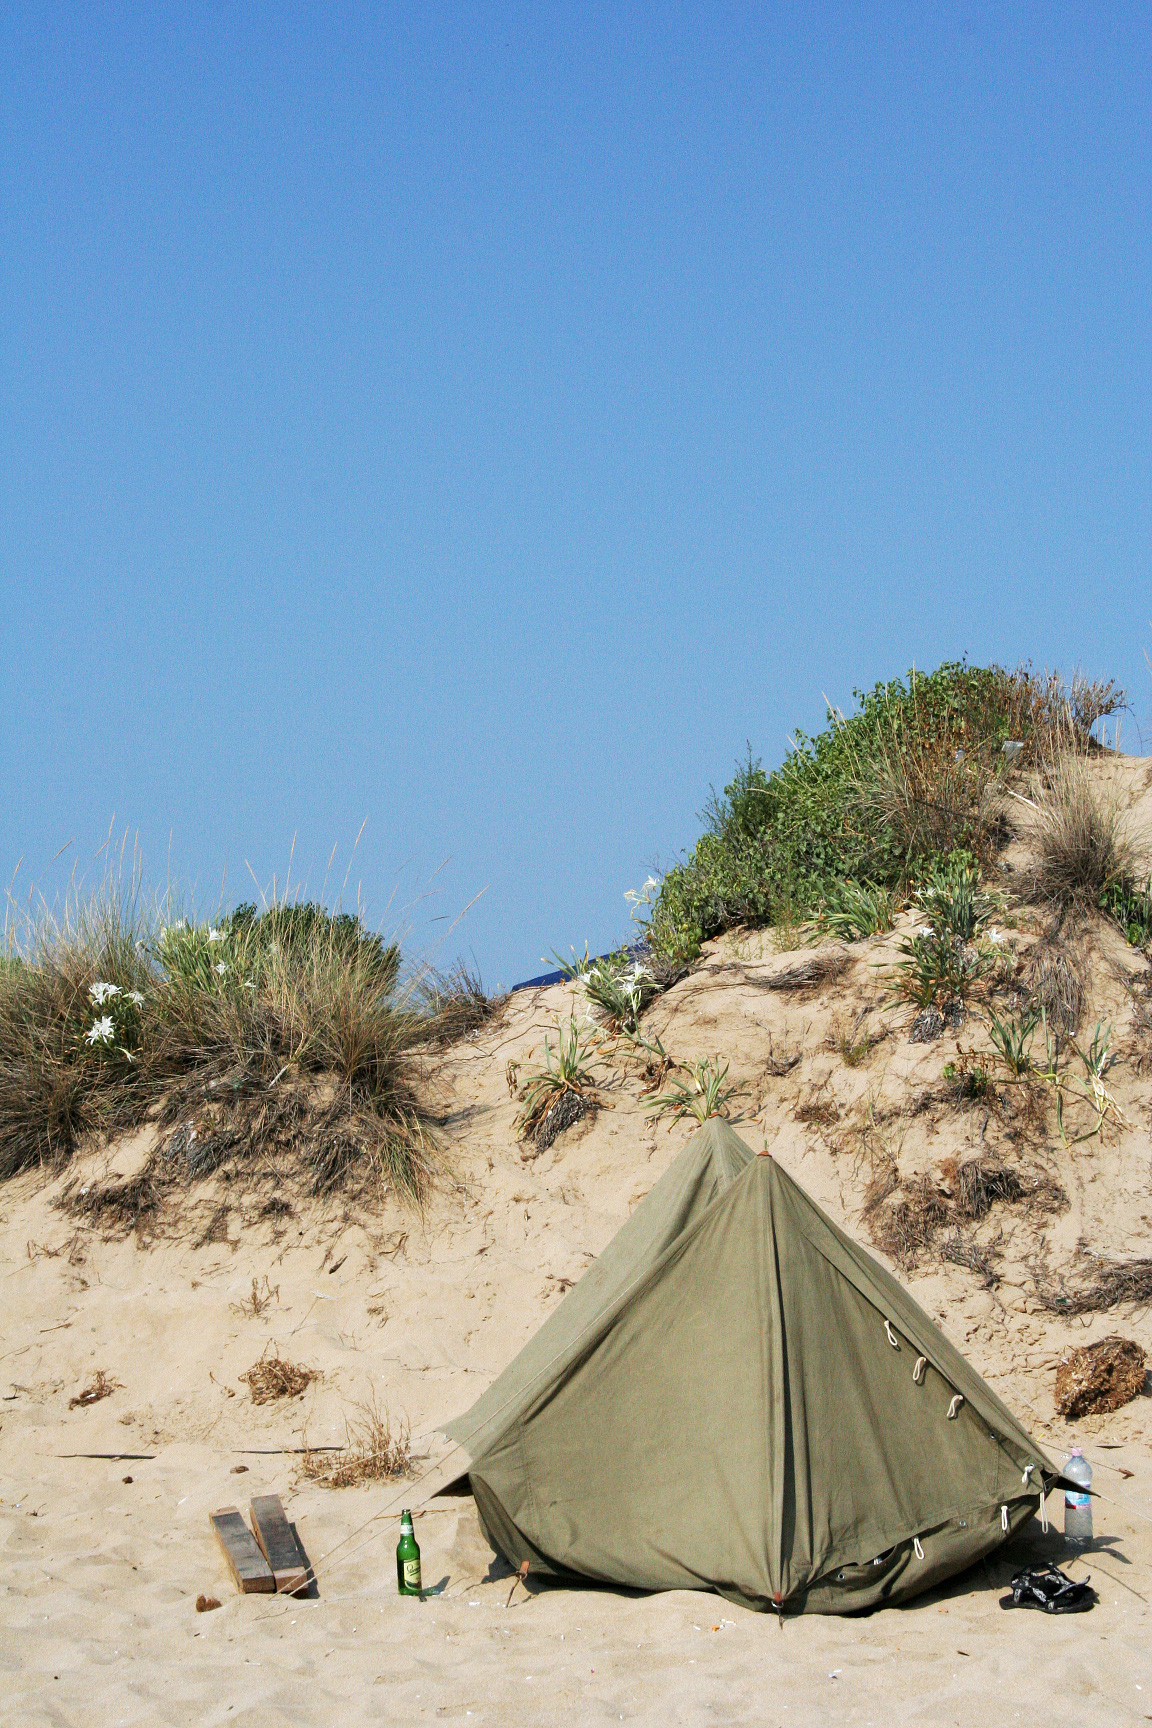 FileA tent on the beach (492568899).jpg & File:A tent on the beach (492568899).jpg - Wikimedia Commons